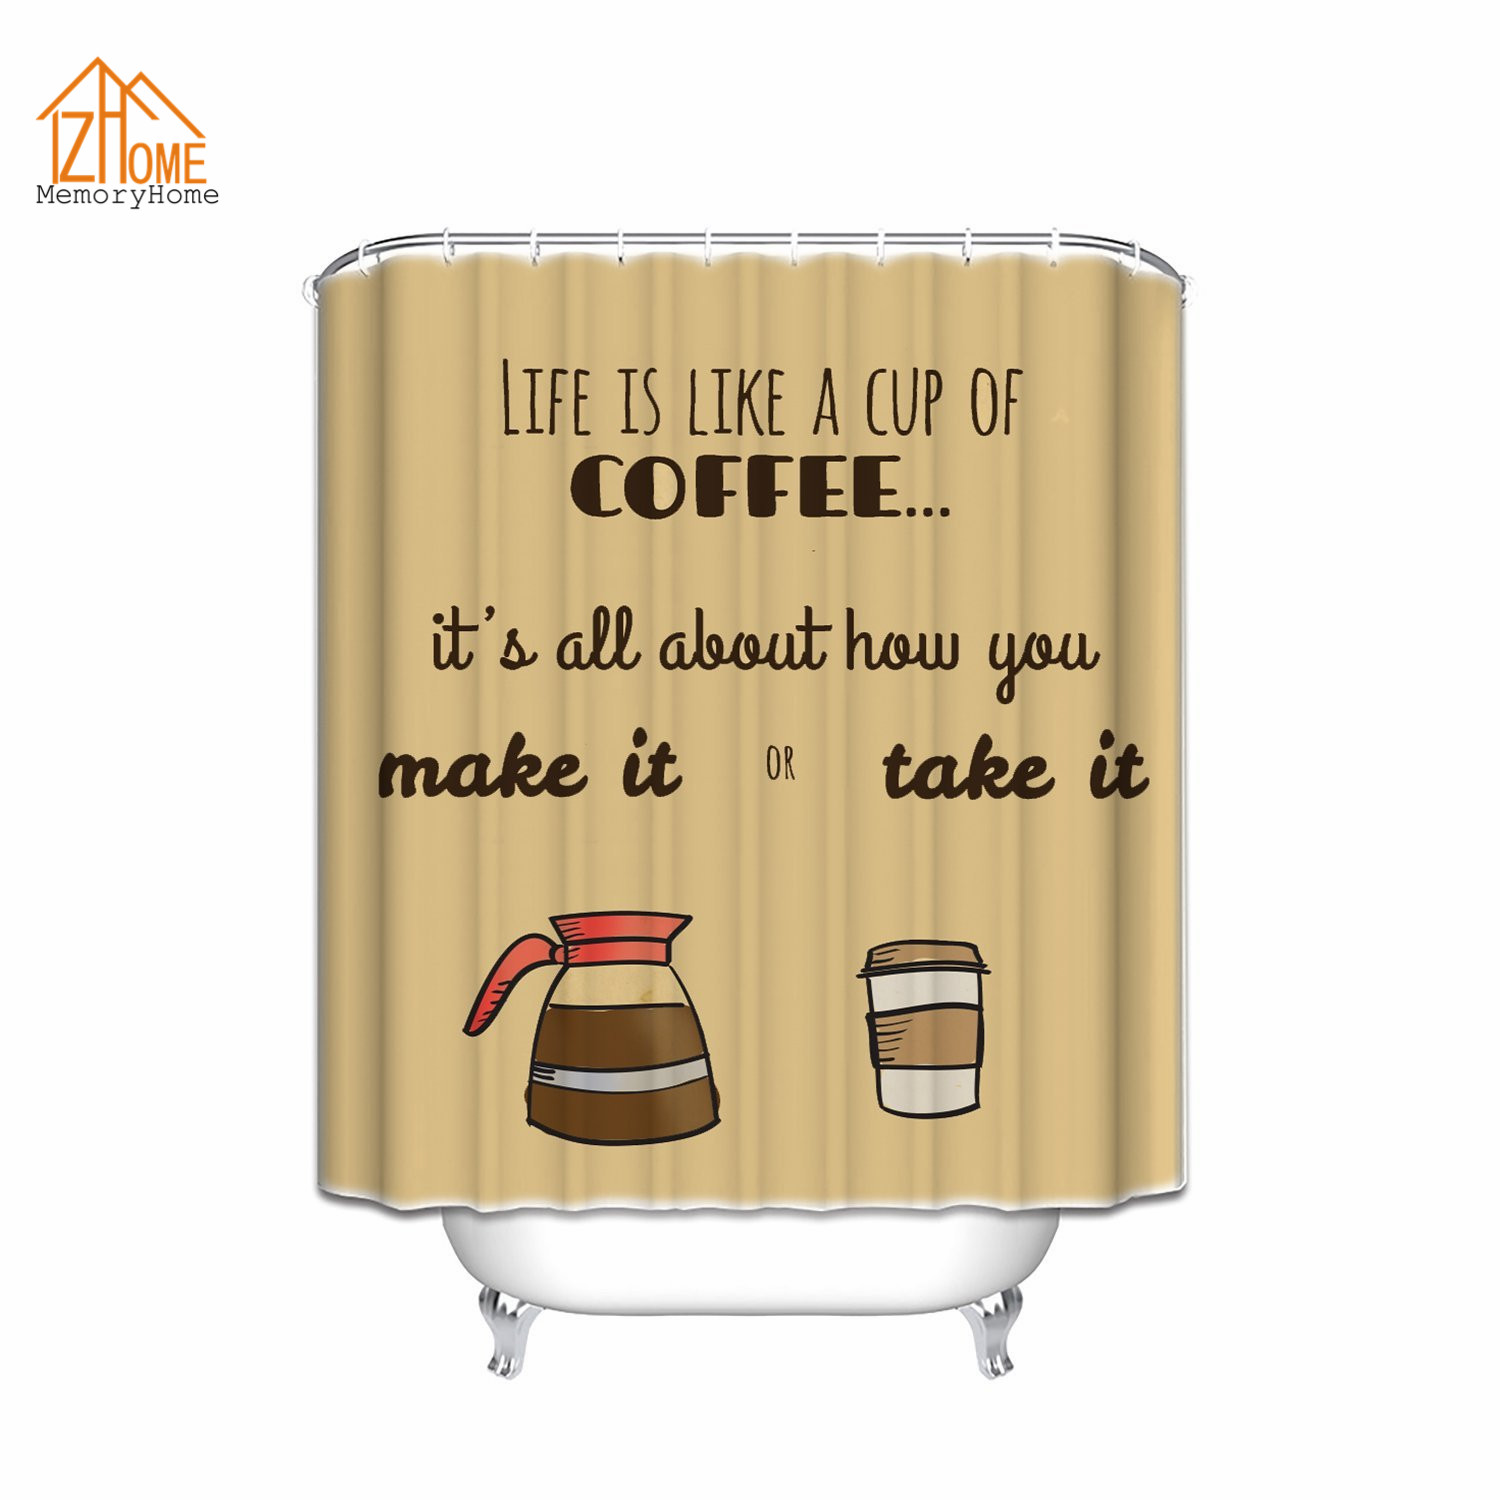 memory home 2017 custom bath curtain life is like a cup of coffee make it or take it funny. Black Bedroom Furniture Sets. Home Design Ideas